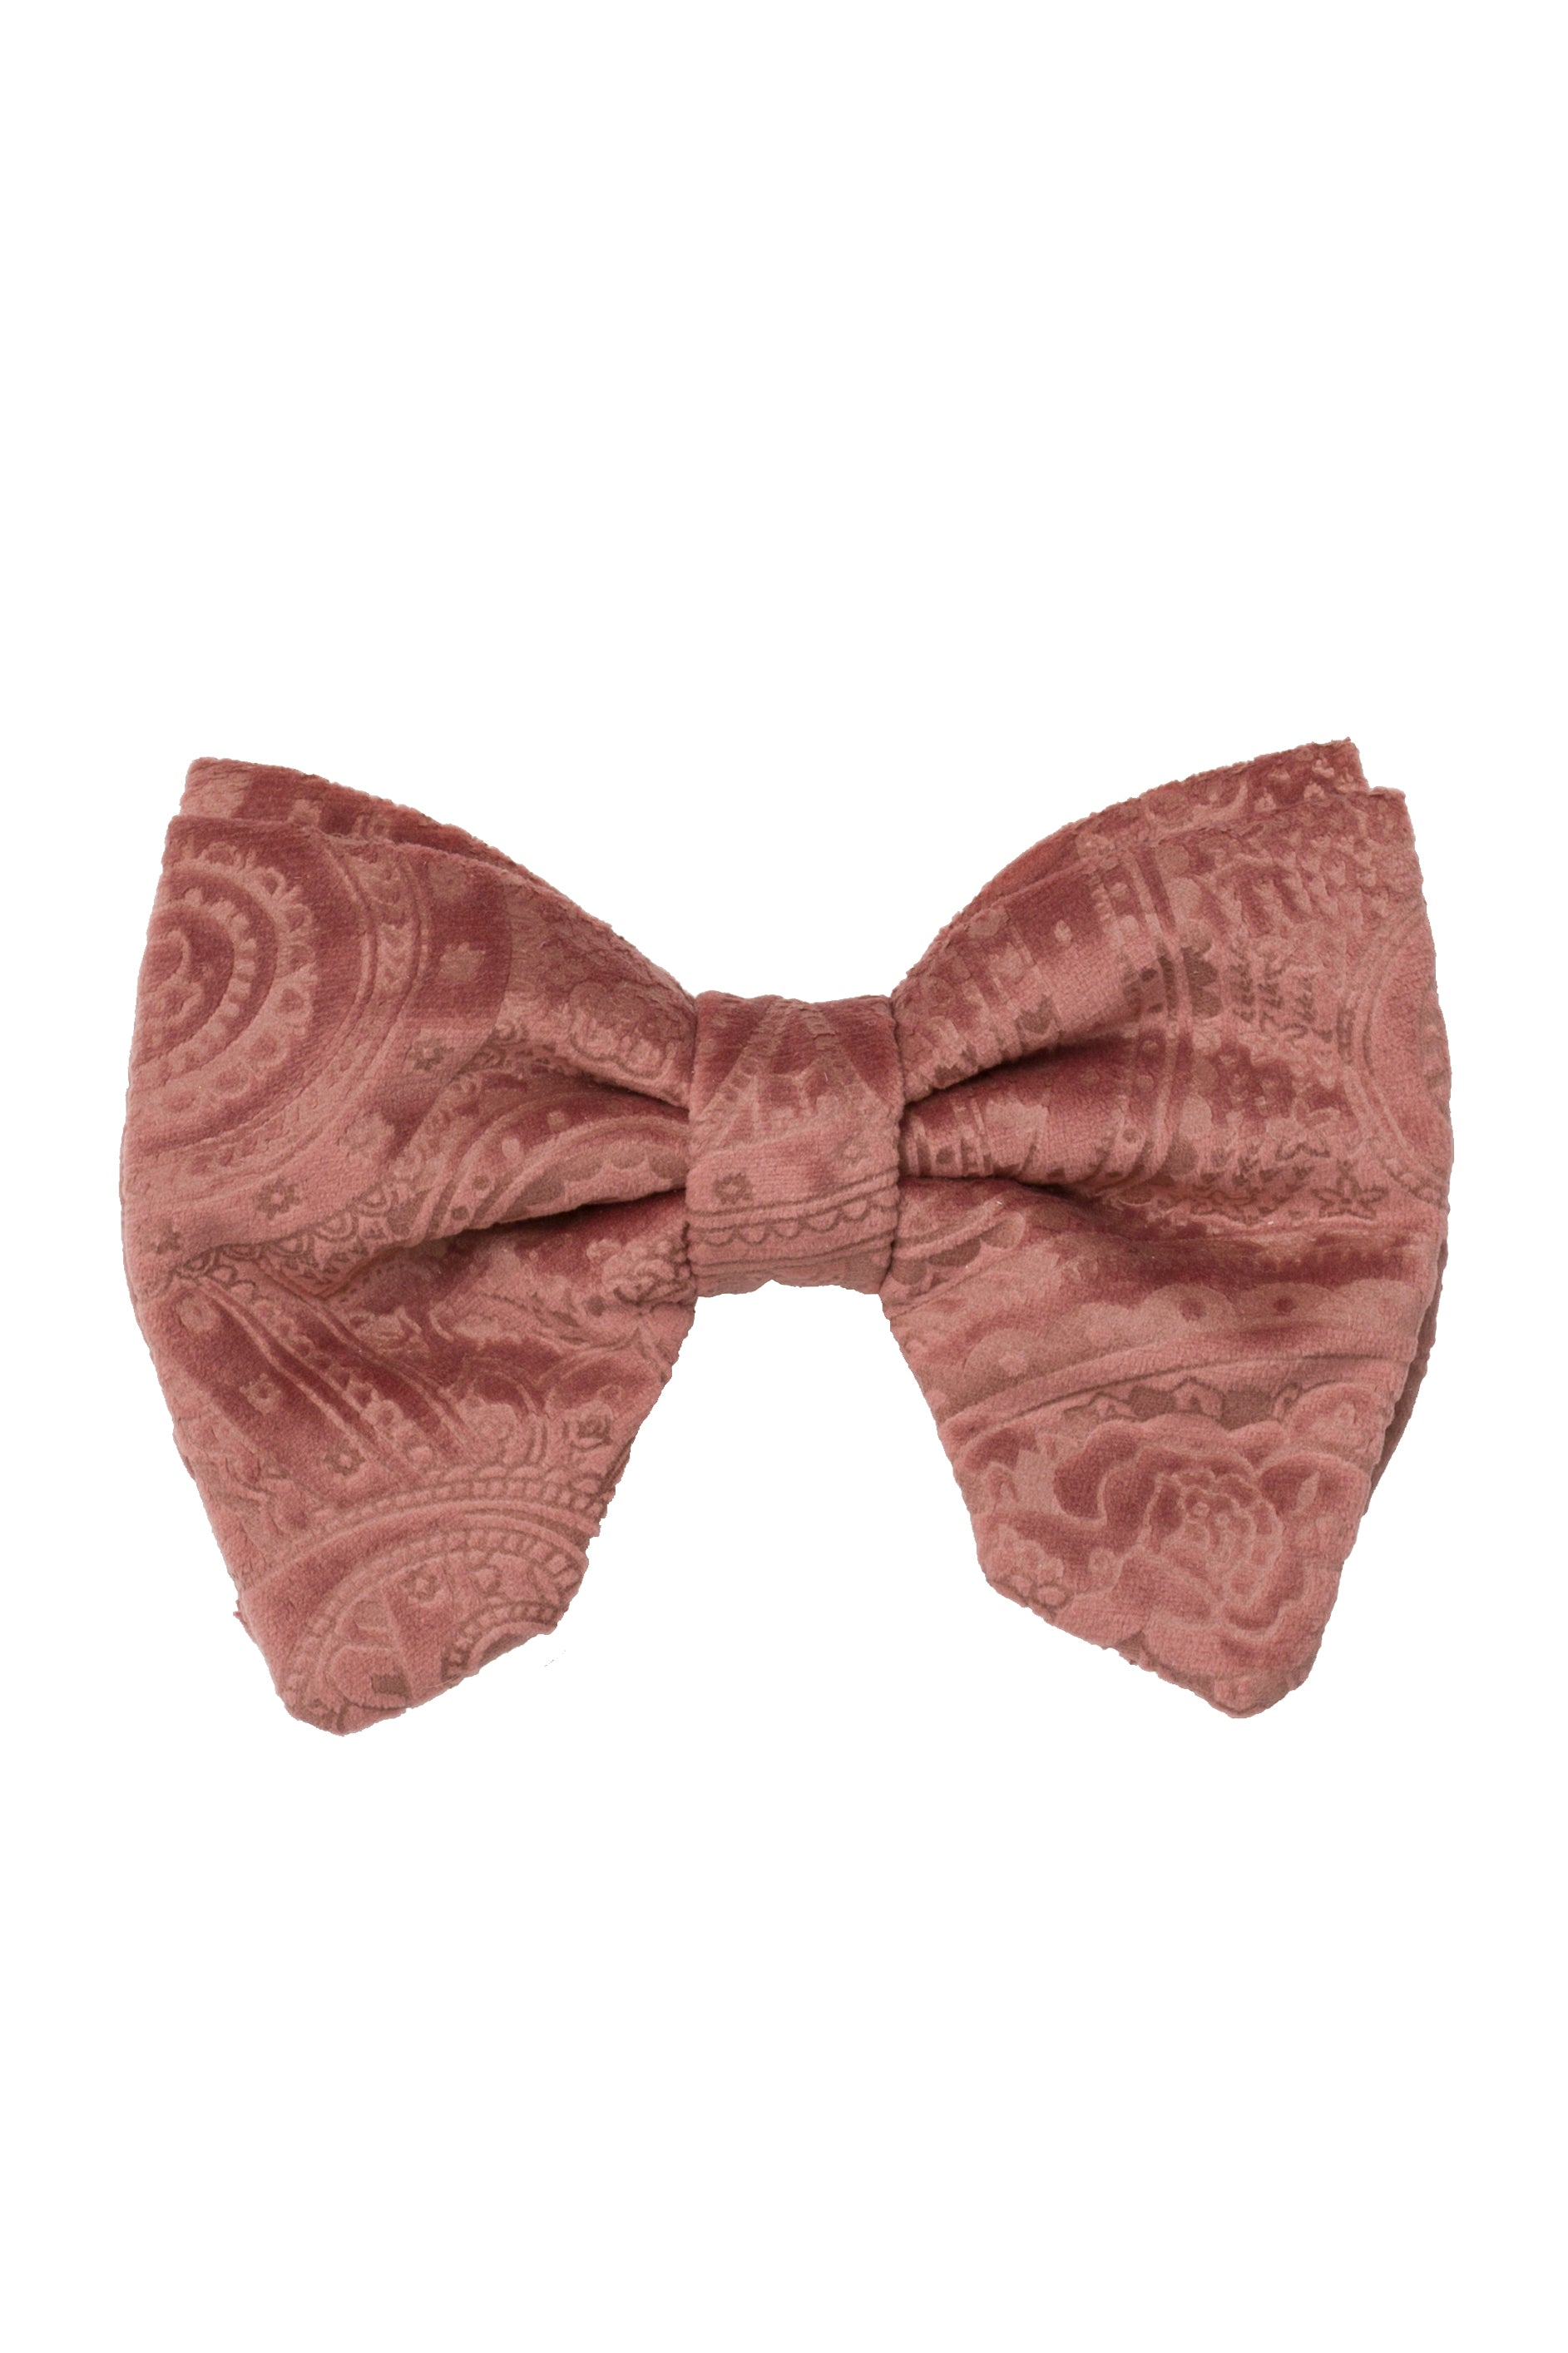 Beauty & The Beast Bowtie/Hair Clip - Rose Paisely Suede - PROJECT 6, modest fashion